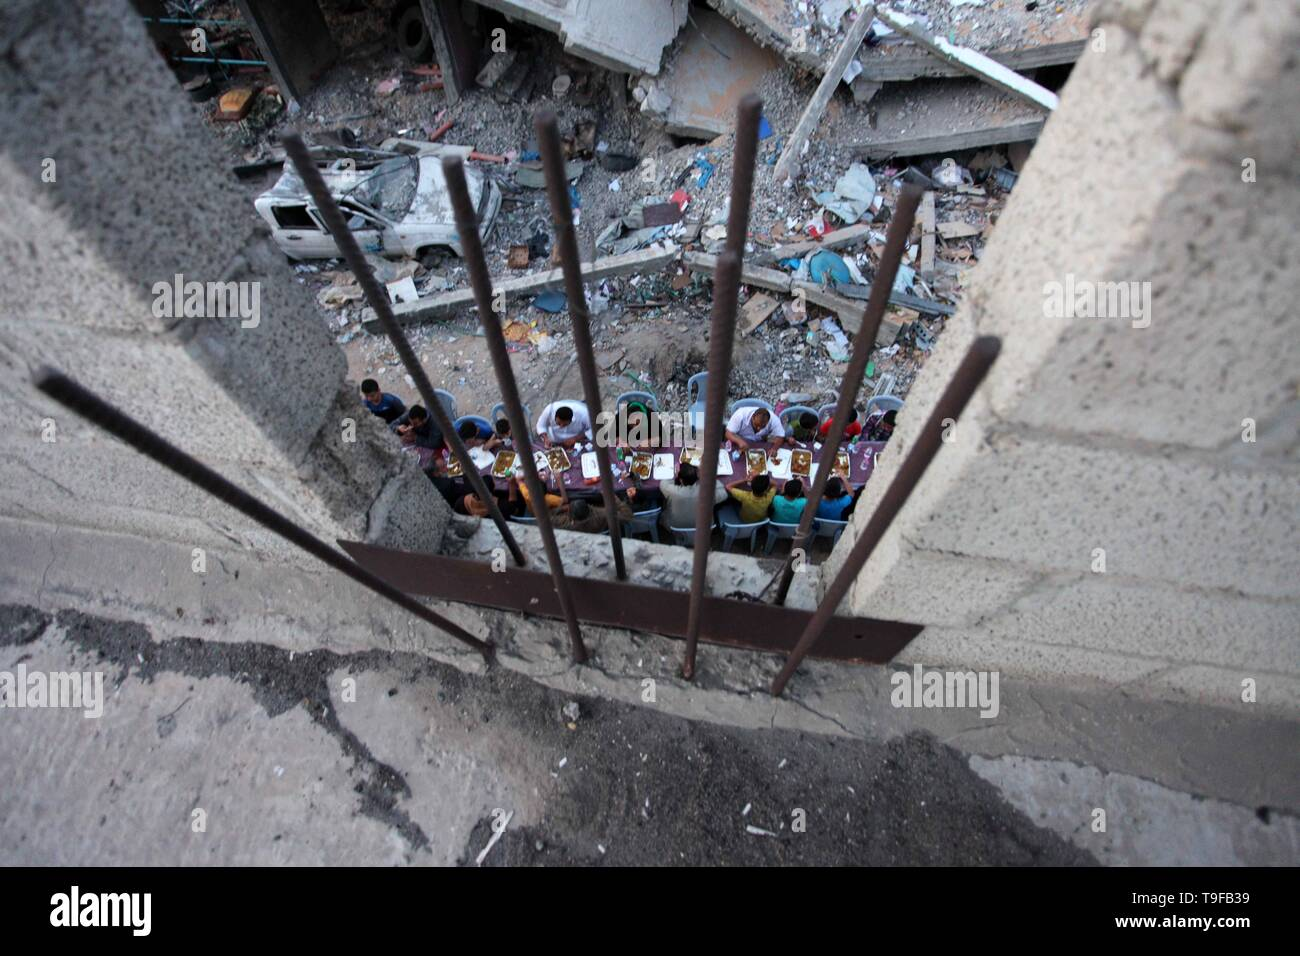 Gaza City, Gaza Strip, Palestinian Territory. 18th May, 2019. Palestinian families break their fast next to a destroyed building during recent confrontation between Hamas and Israel, during the Muslim holy fasting month of Ramadan, in Gaza city on May 18, 2019 Credit: Mahmoud Ajjour/APA Images/ZUMA Wire/Alamy Live News - Stock Image